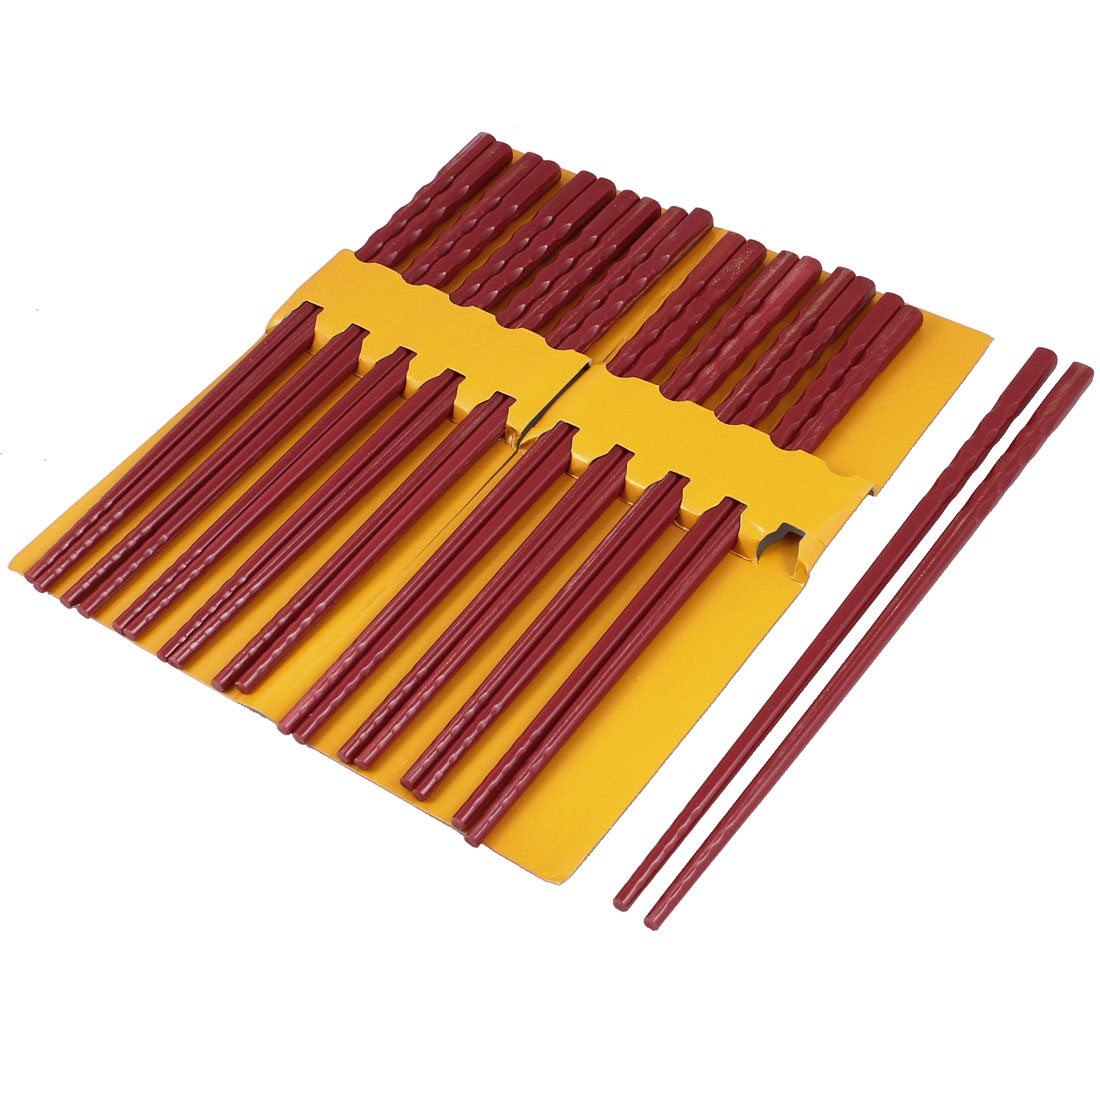 10 Pairs Kitchen Dishware Nonslip Plastic Chopsticks Burgundy